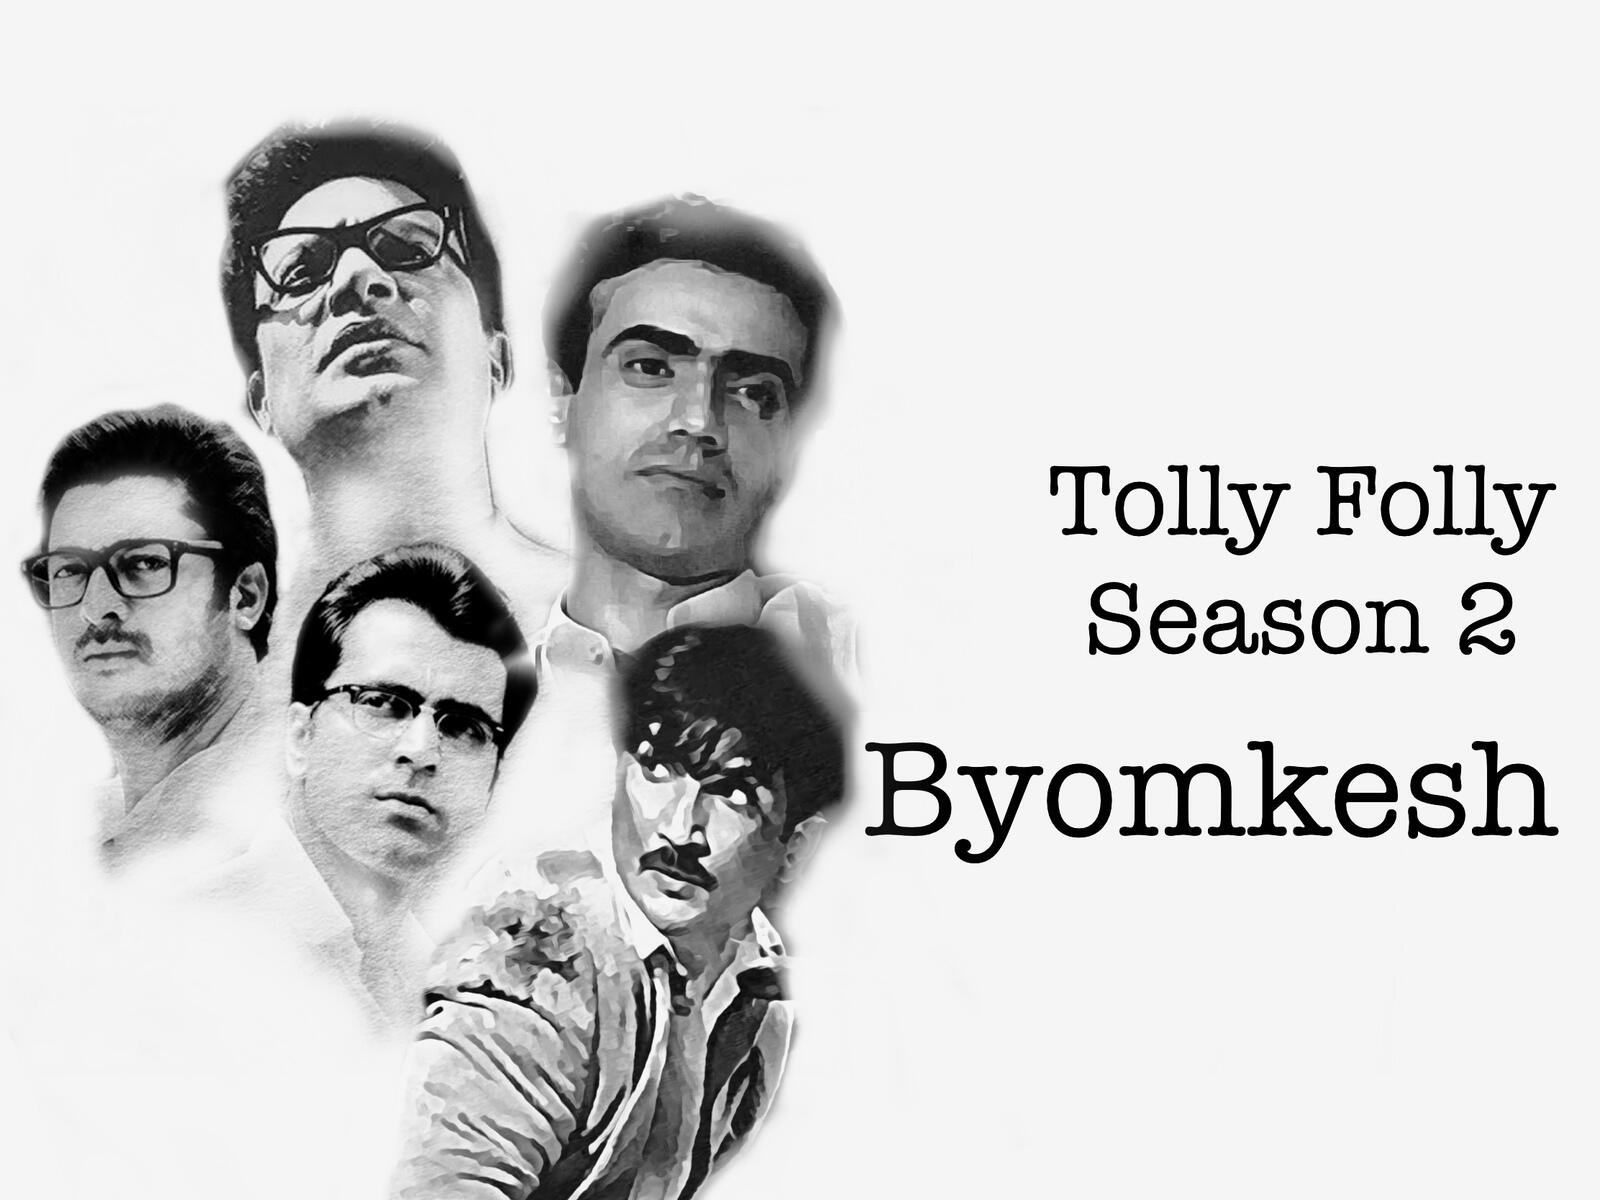 TOLLY FOLLY SEASON 2 EPISODE 3: HAR HAR BYOMKESH & OTHER BENGALI ADAPTATIONS